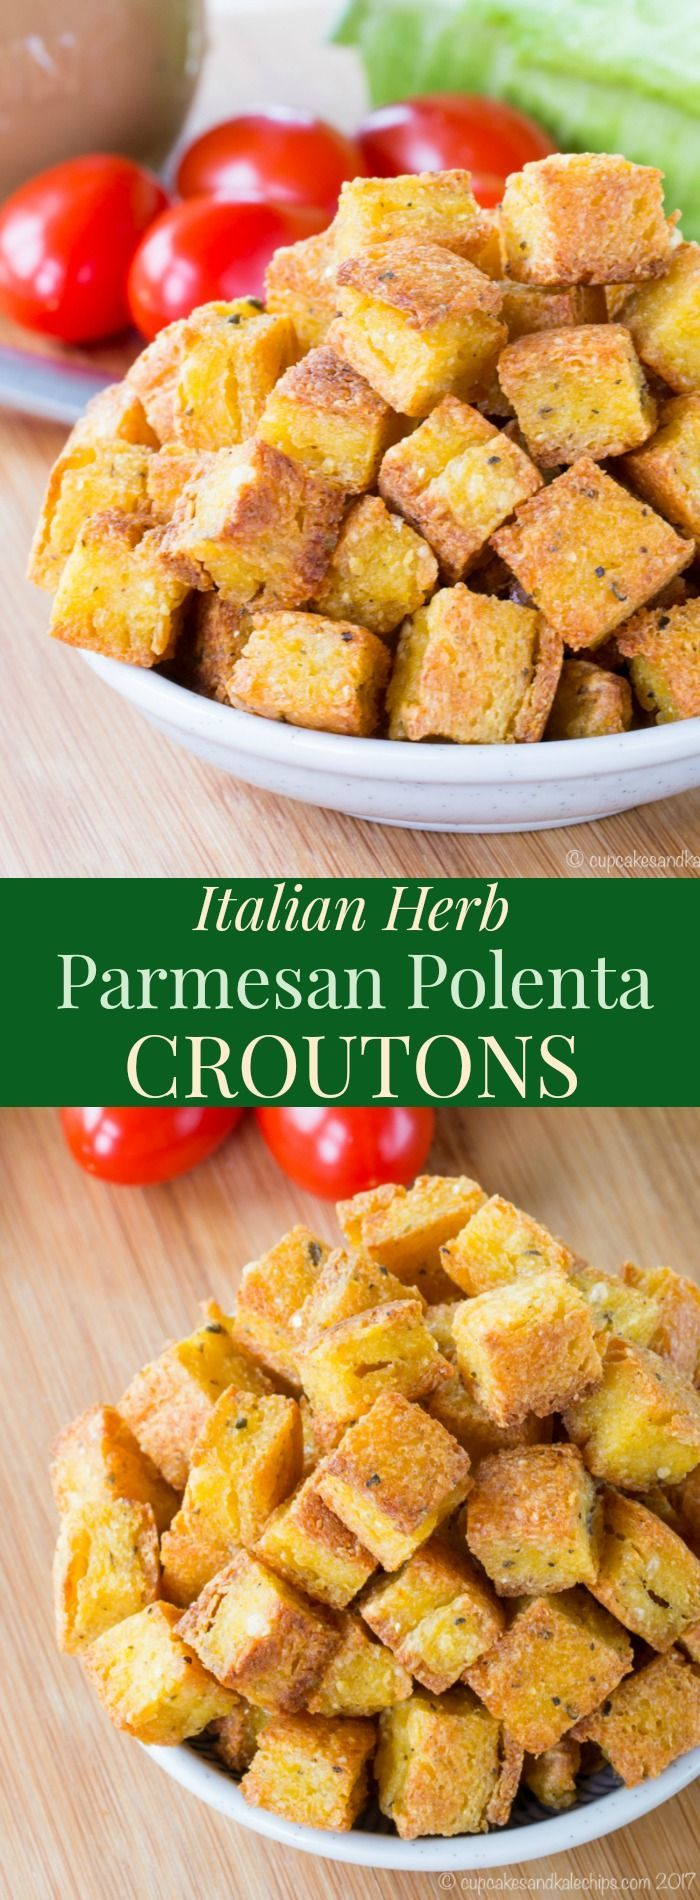 Italian Herb Parmesan Polenta Croutons - a crispy salad topping that's naturally gluten free